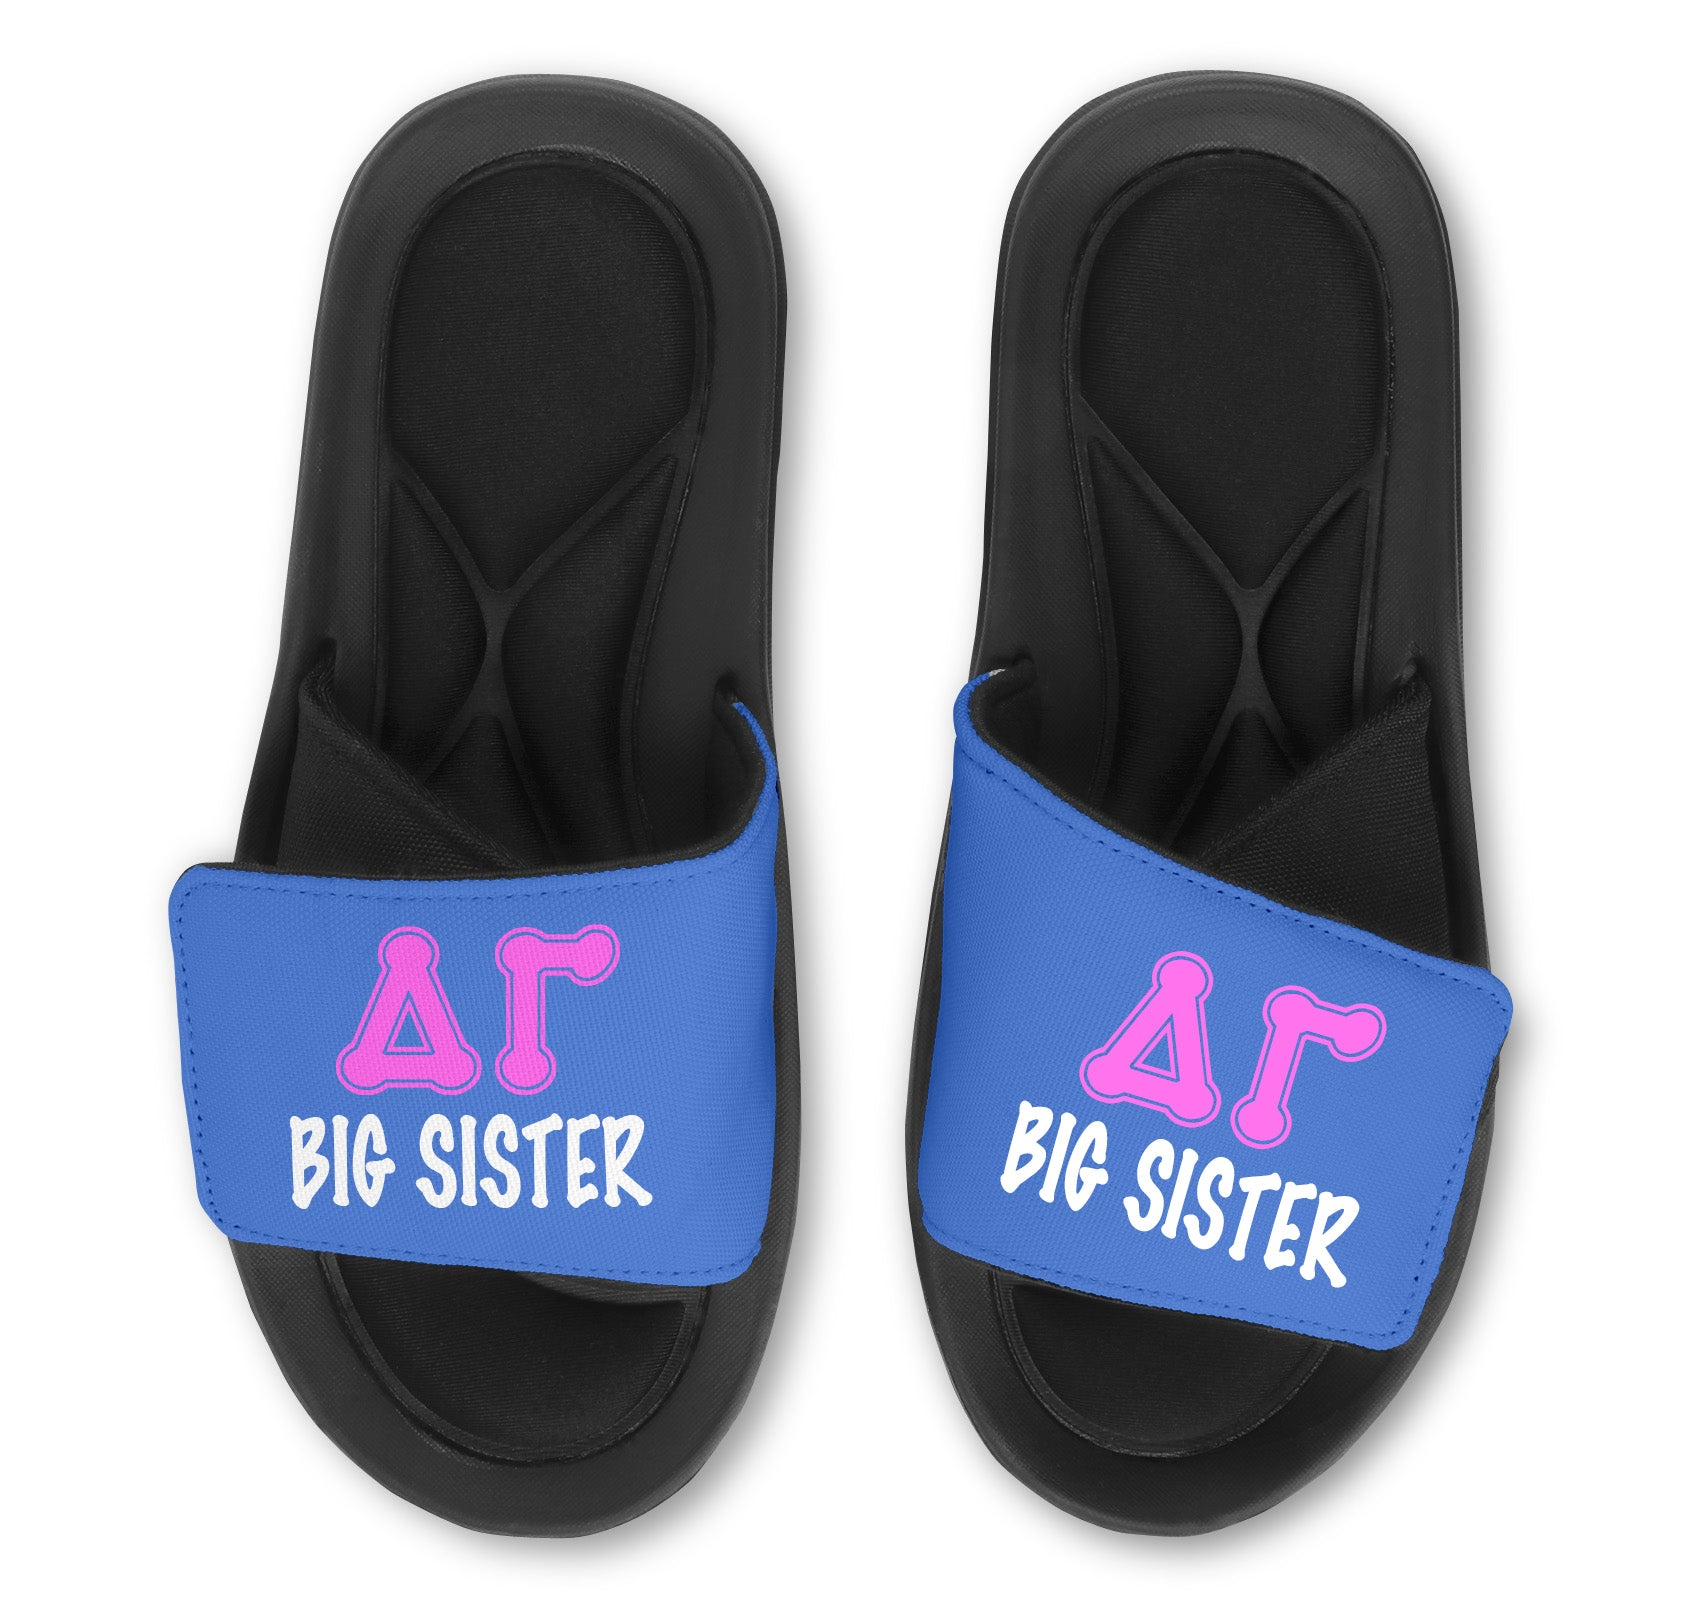 Alpha Delta Gamma Slides - Big Sister